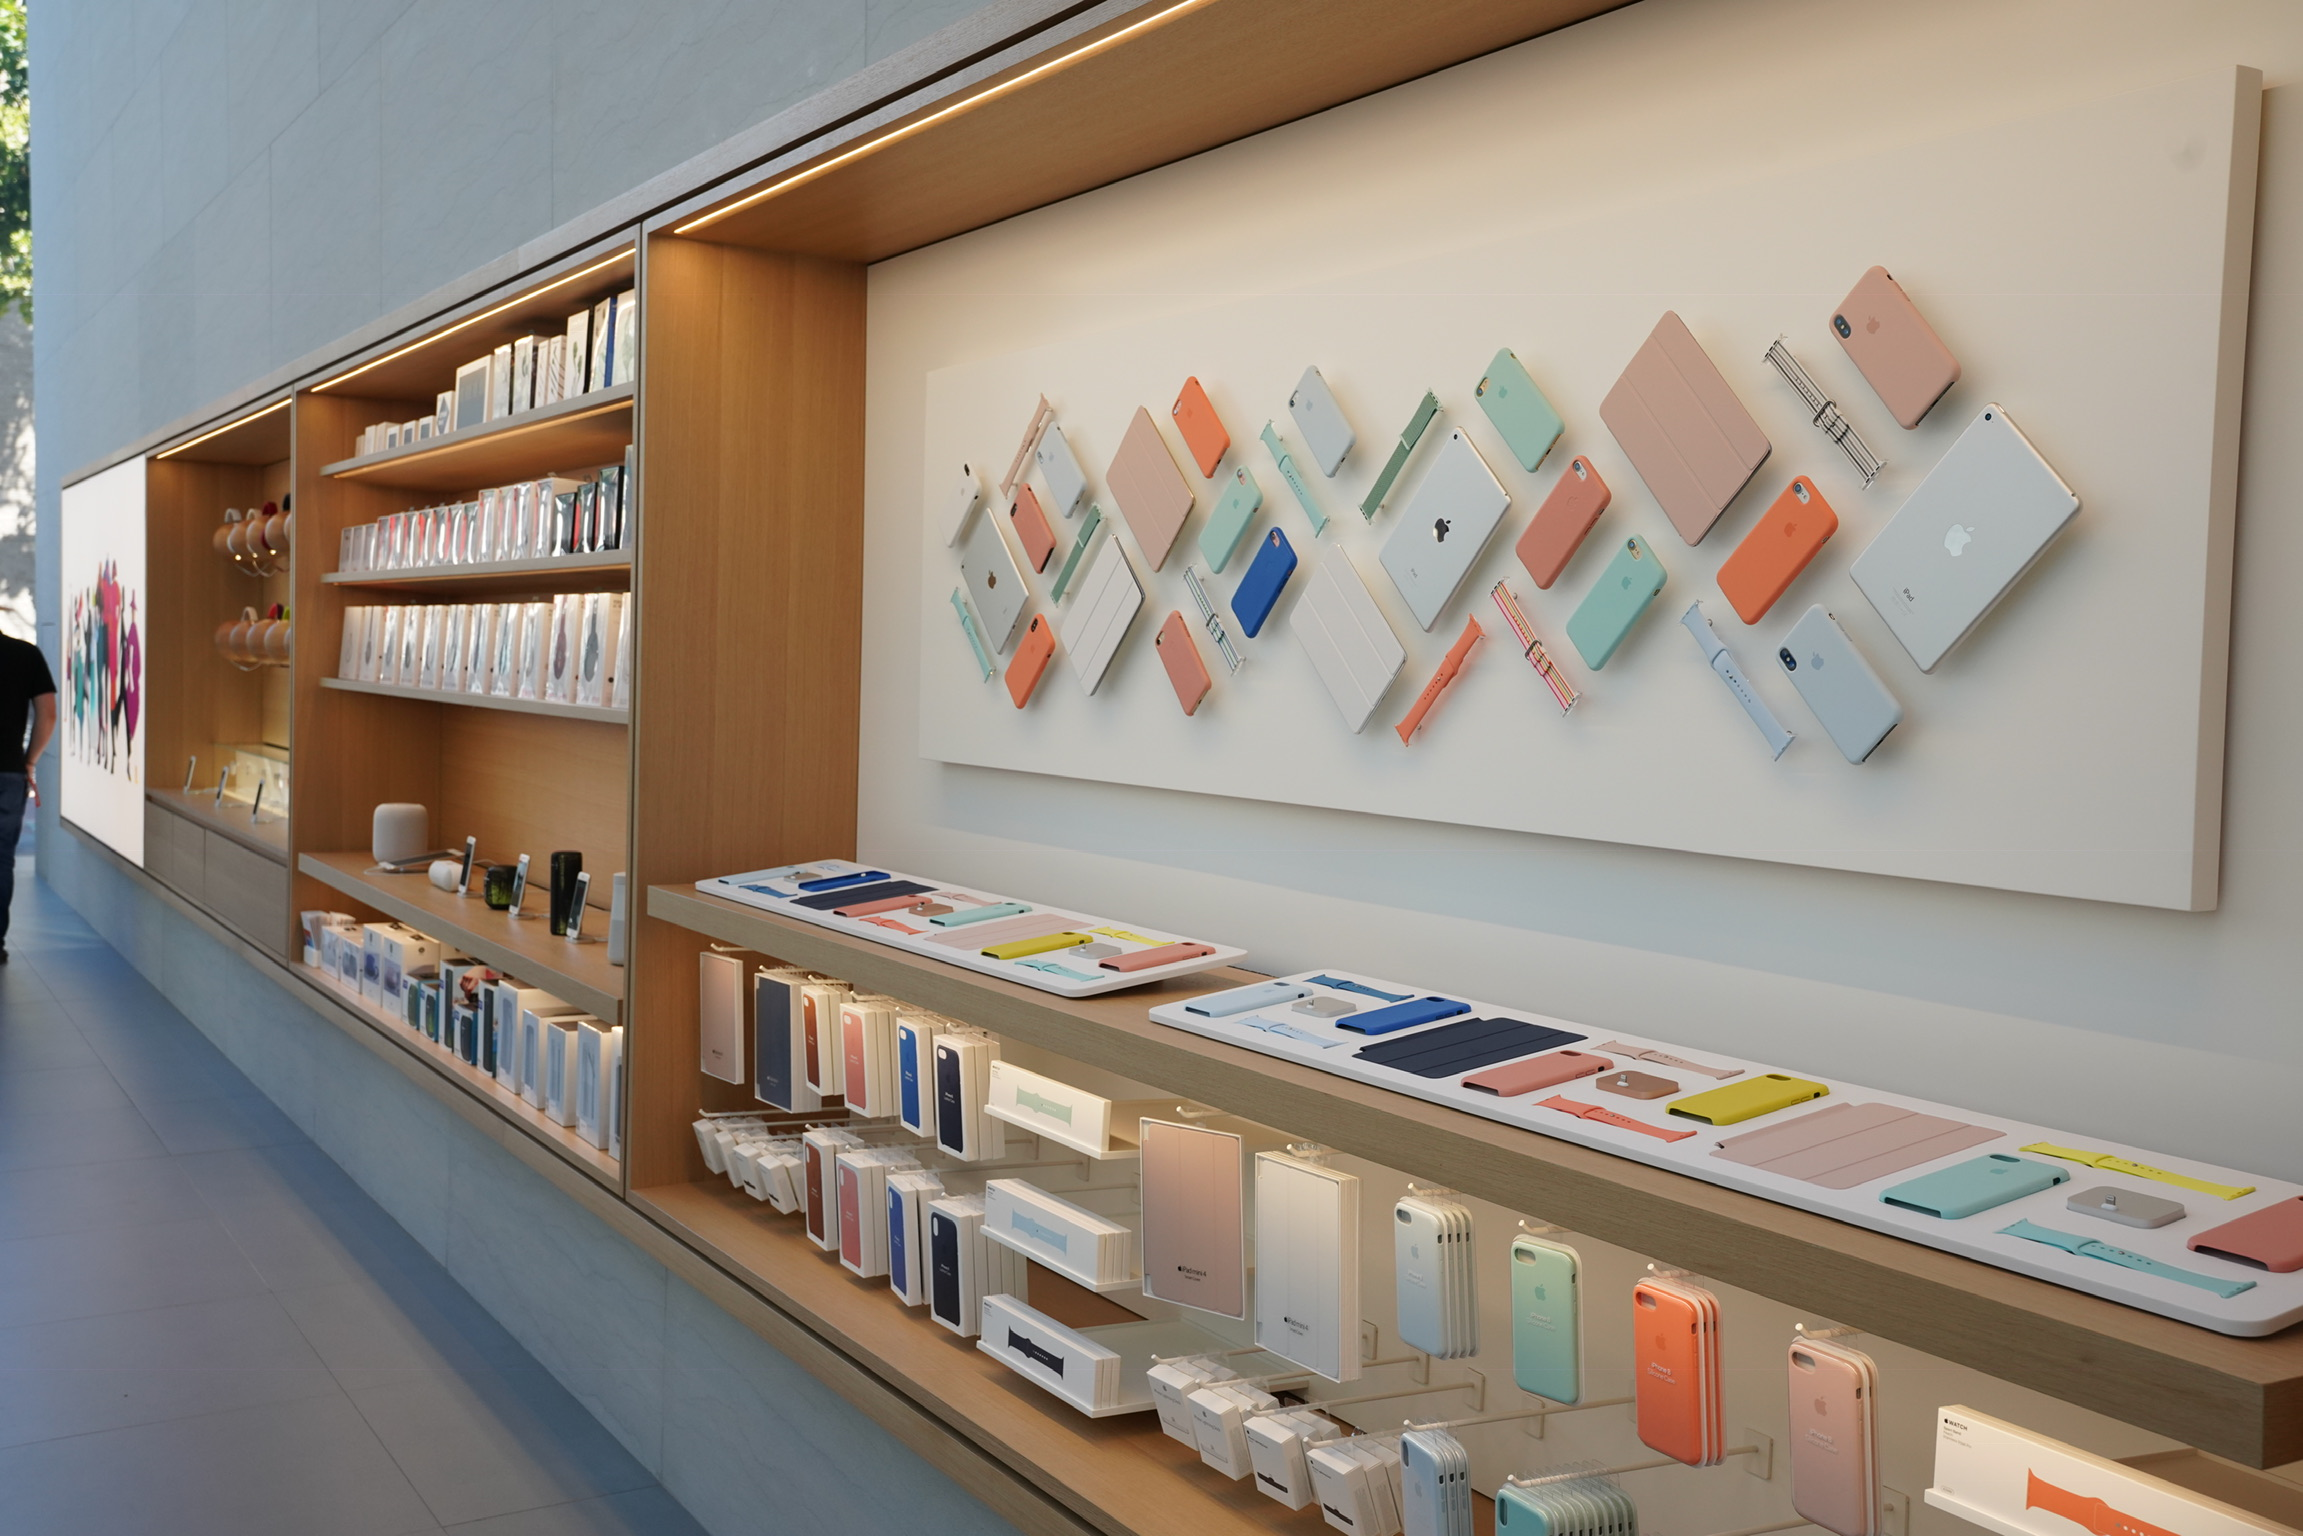 Gallery: Apple's renovated Palo Alto store blends latest retail